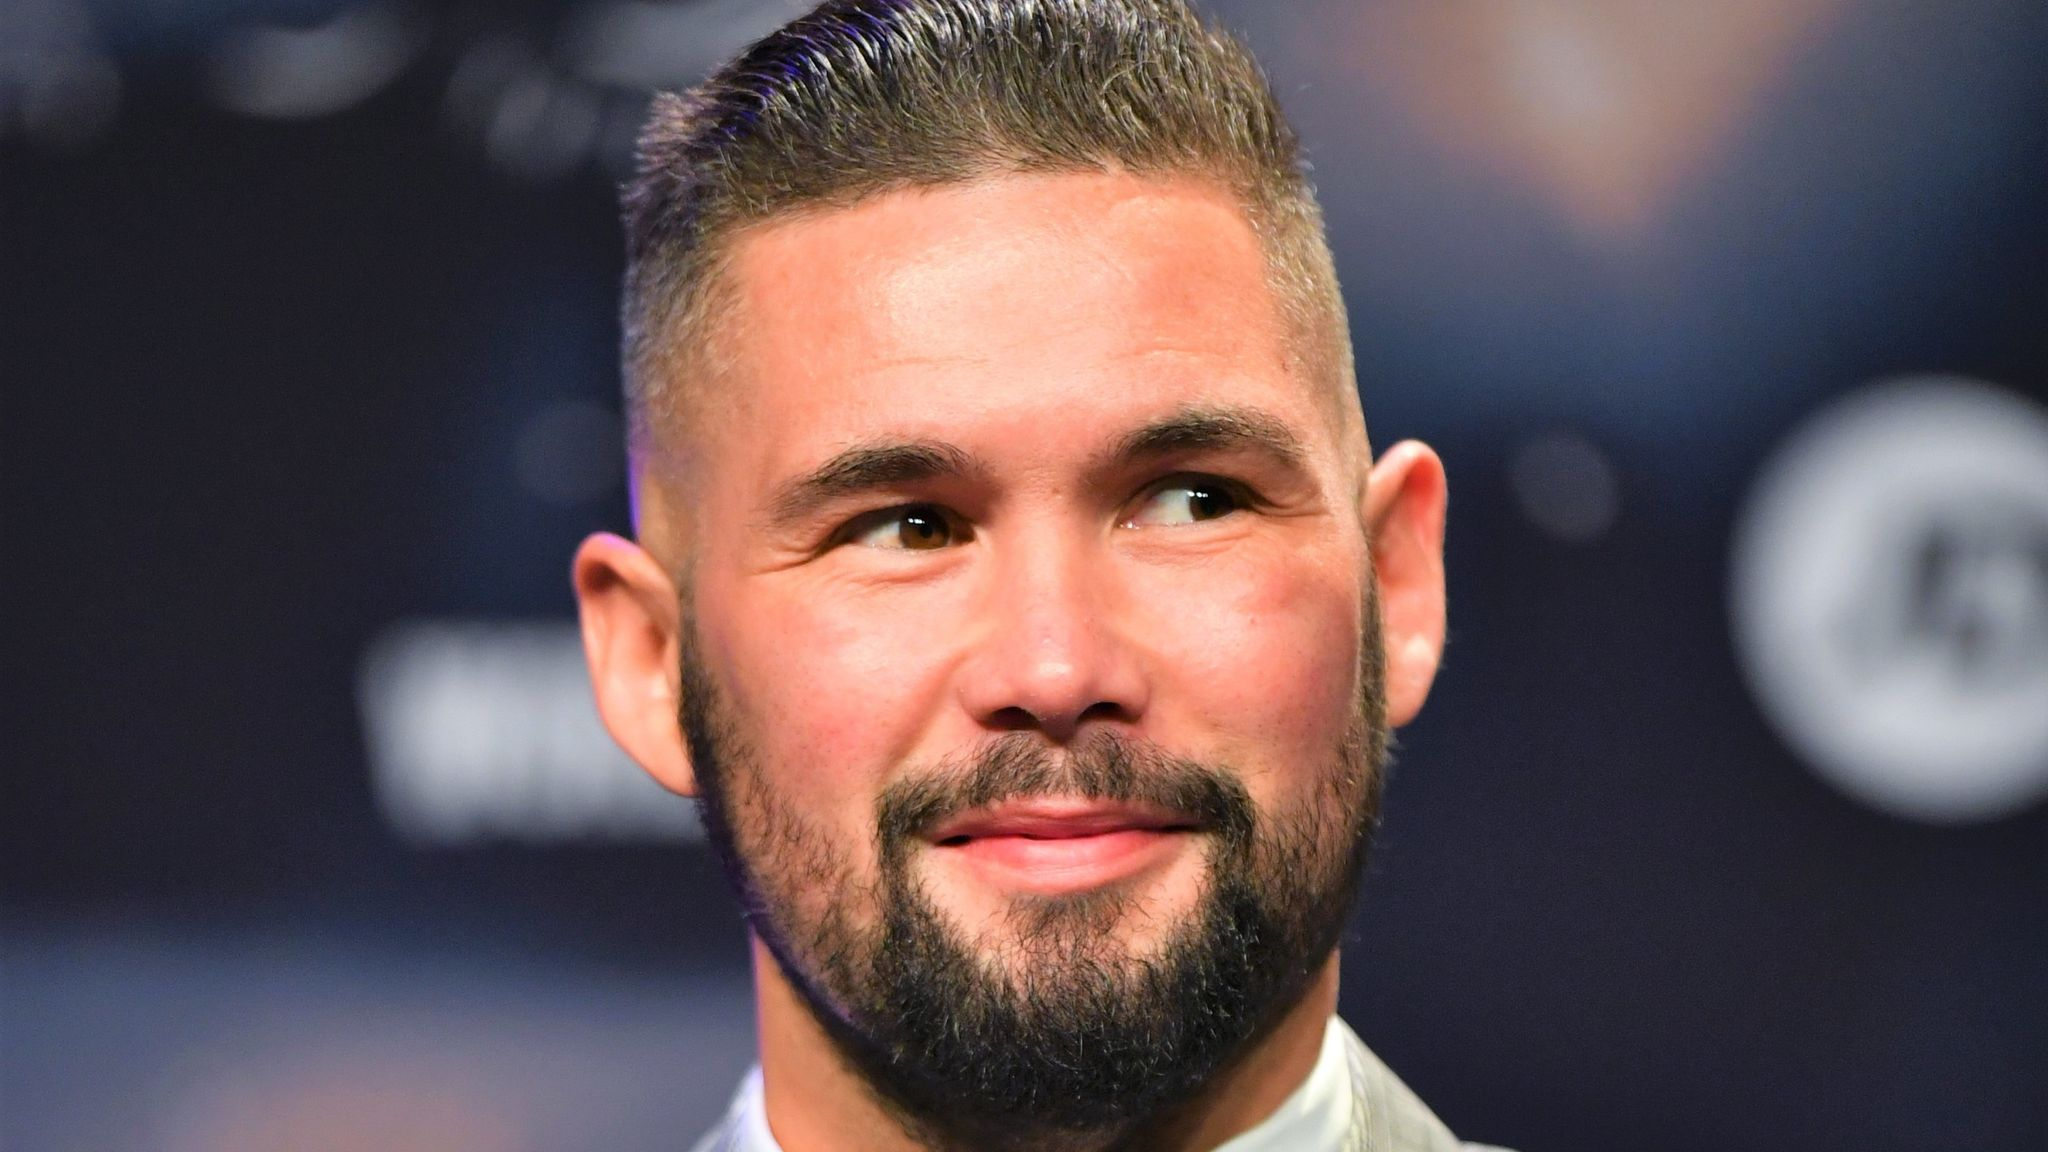 Tony Bellew on SAS Who Dares Wins, being inspired by the military ...